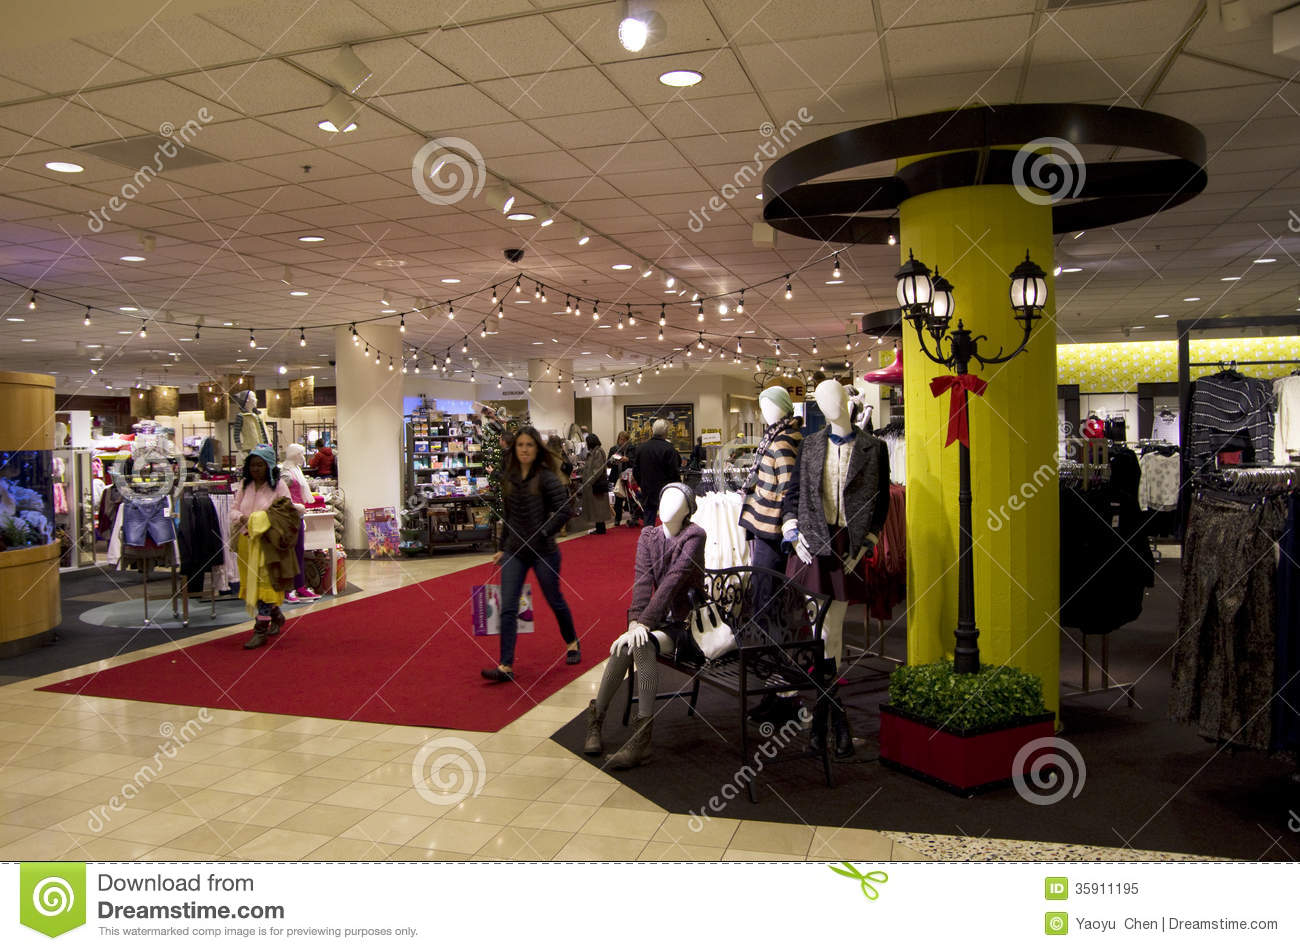 Retail clothing store interior design